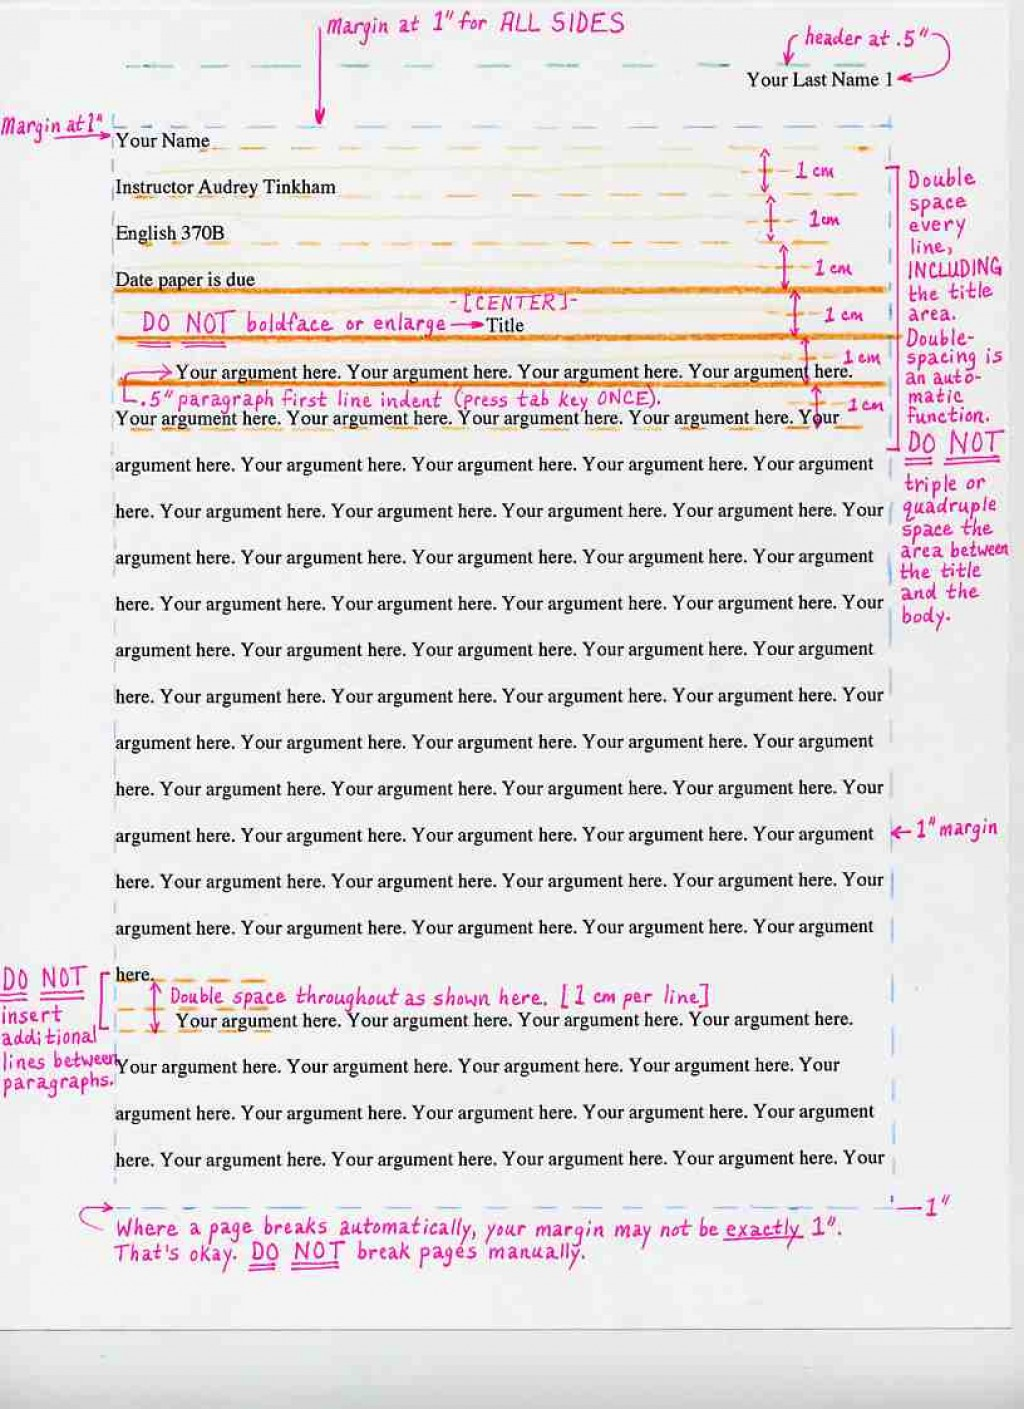 010 Img067 Essay Example Amazing Style Oxford Guide Questions Sat Large